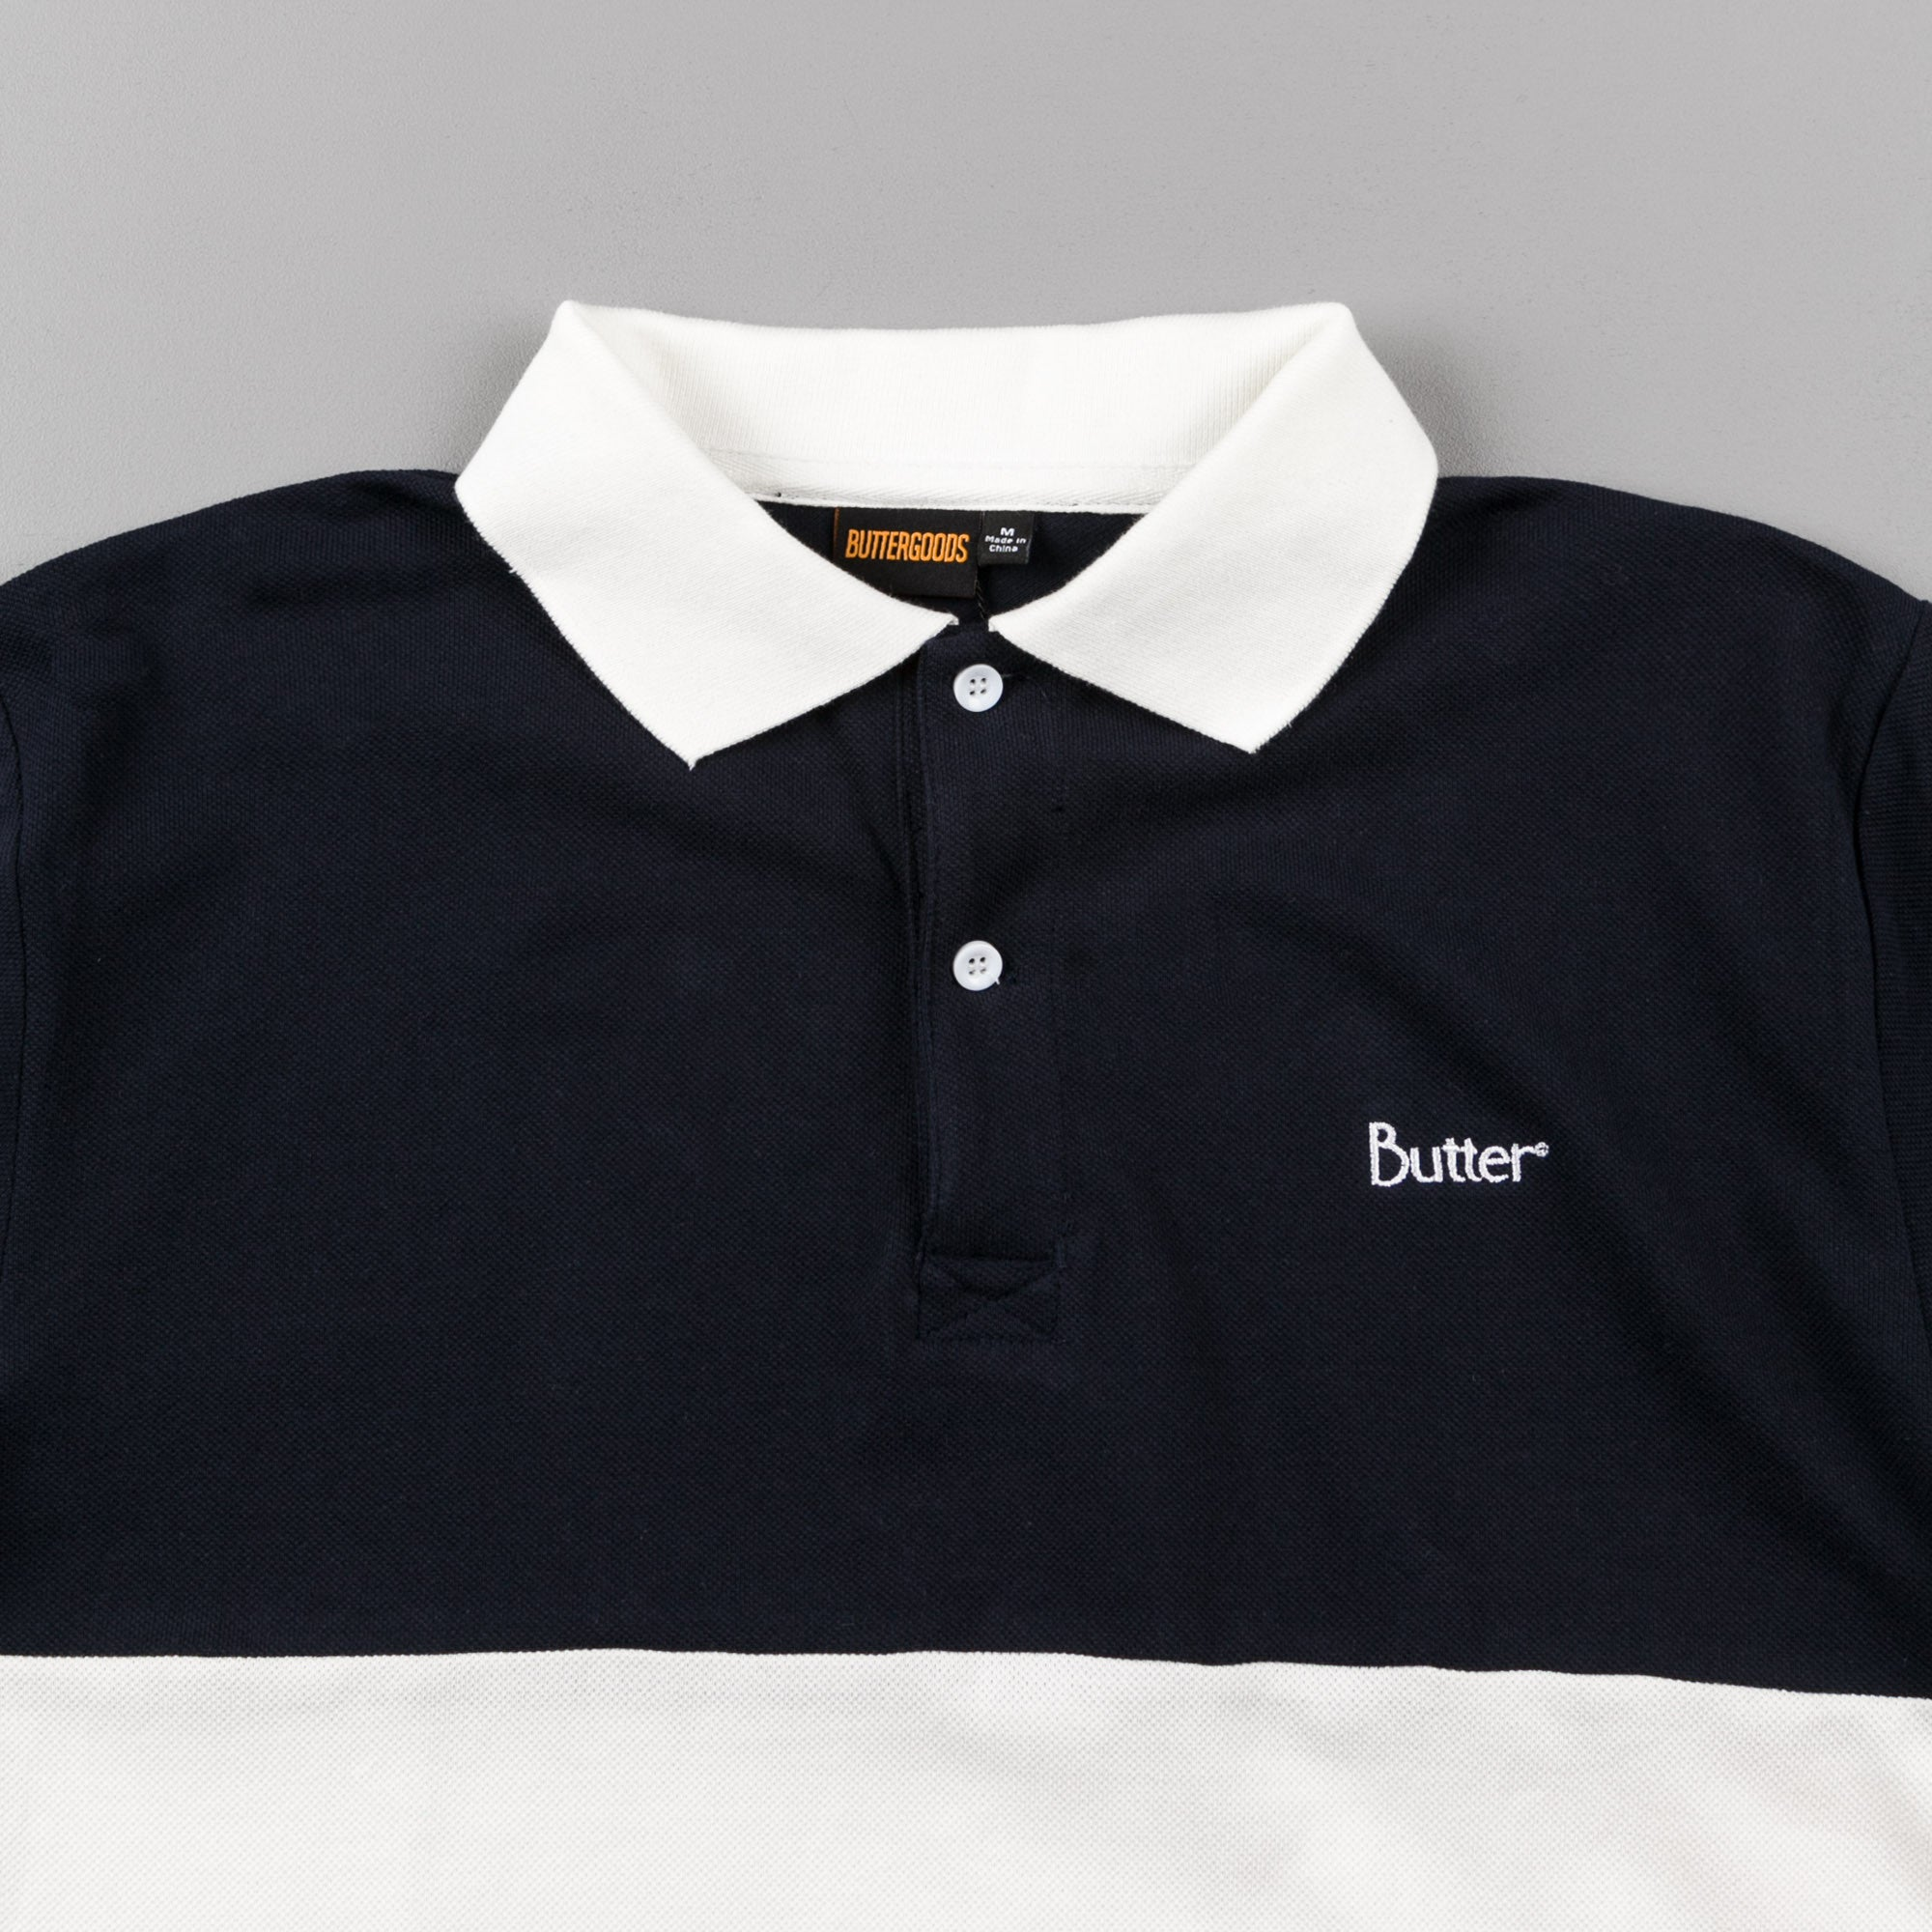 Butter Goods Court Polo Shirt - Navy / White / Pink